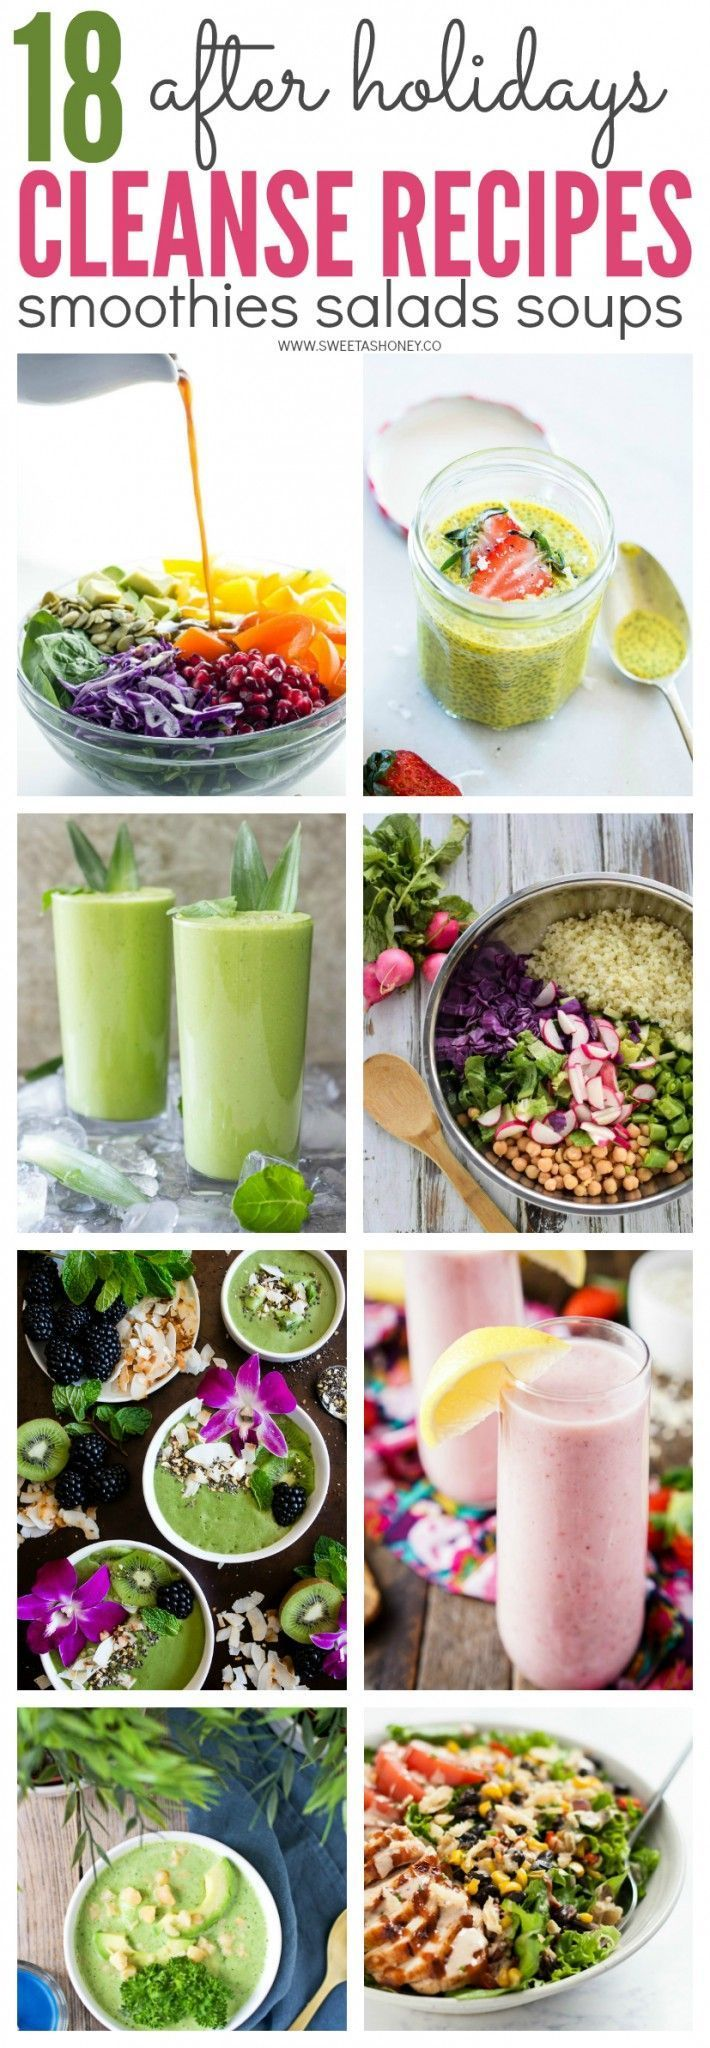 18 after holidays cleanse recipes Juice, soup, smoothie, clean